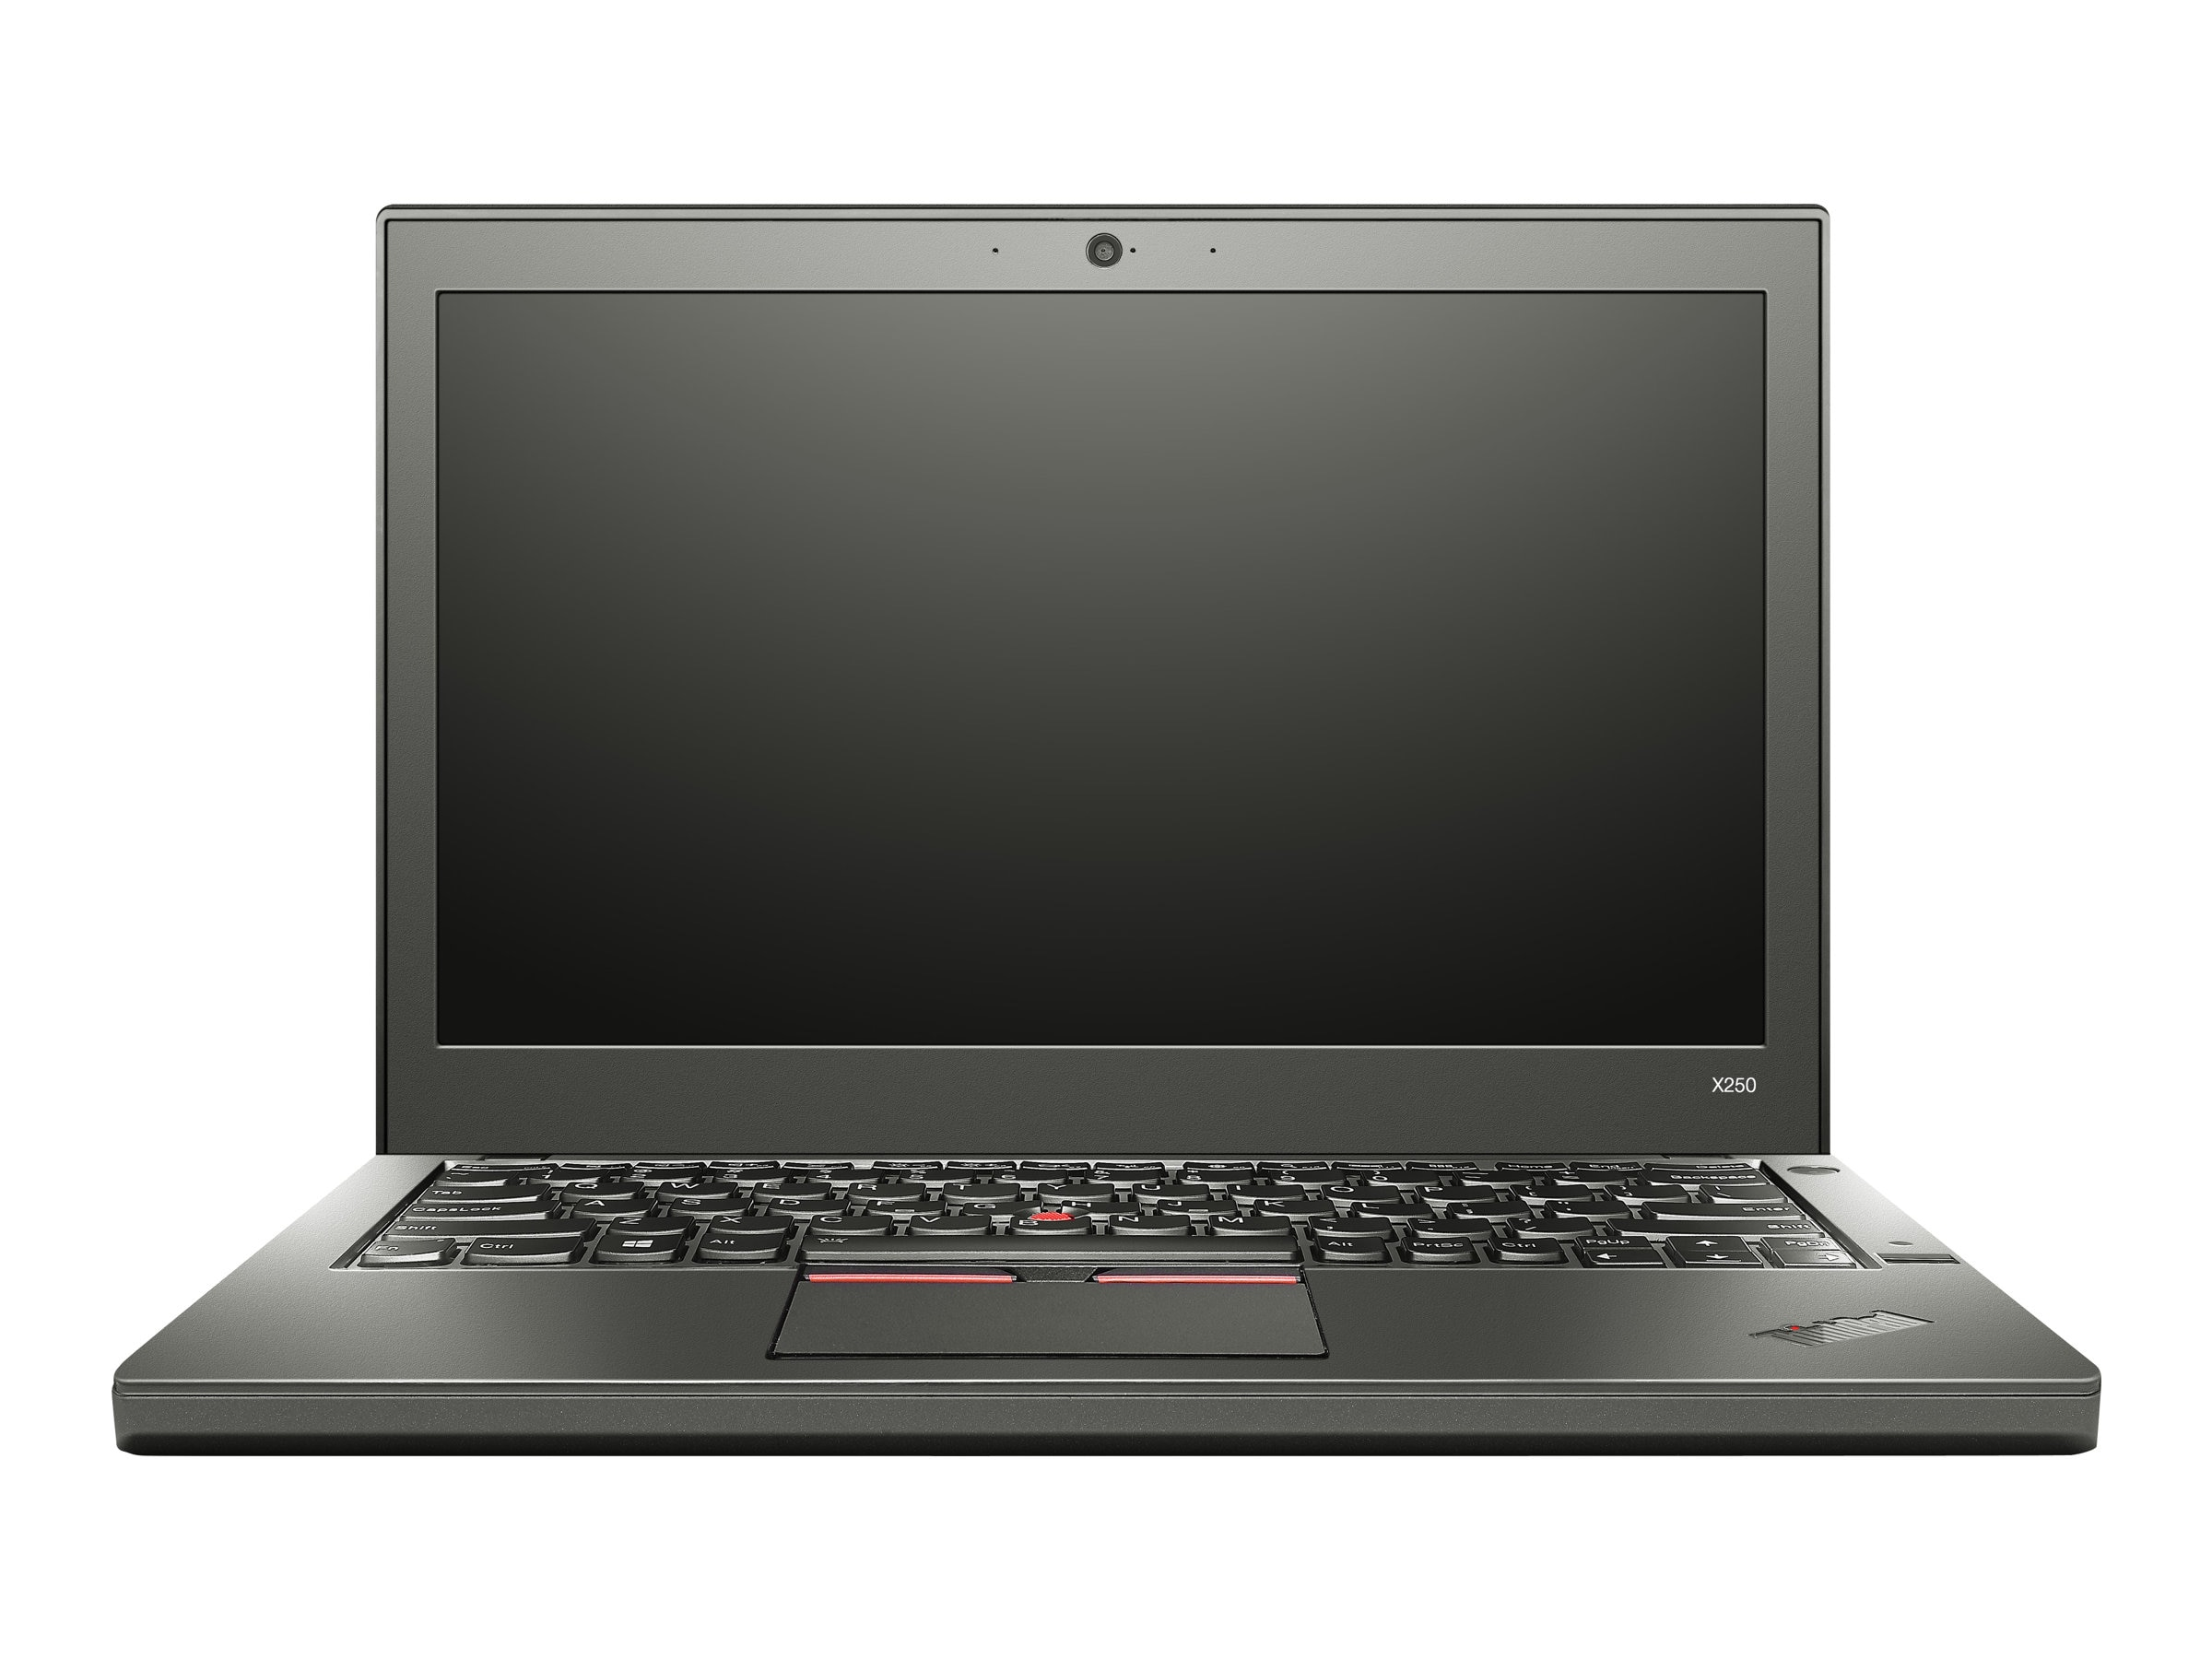 Lenovo TopSeller ThinkPad X250 2.3GHz Core i5 12.5in display, 20CM0060US